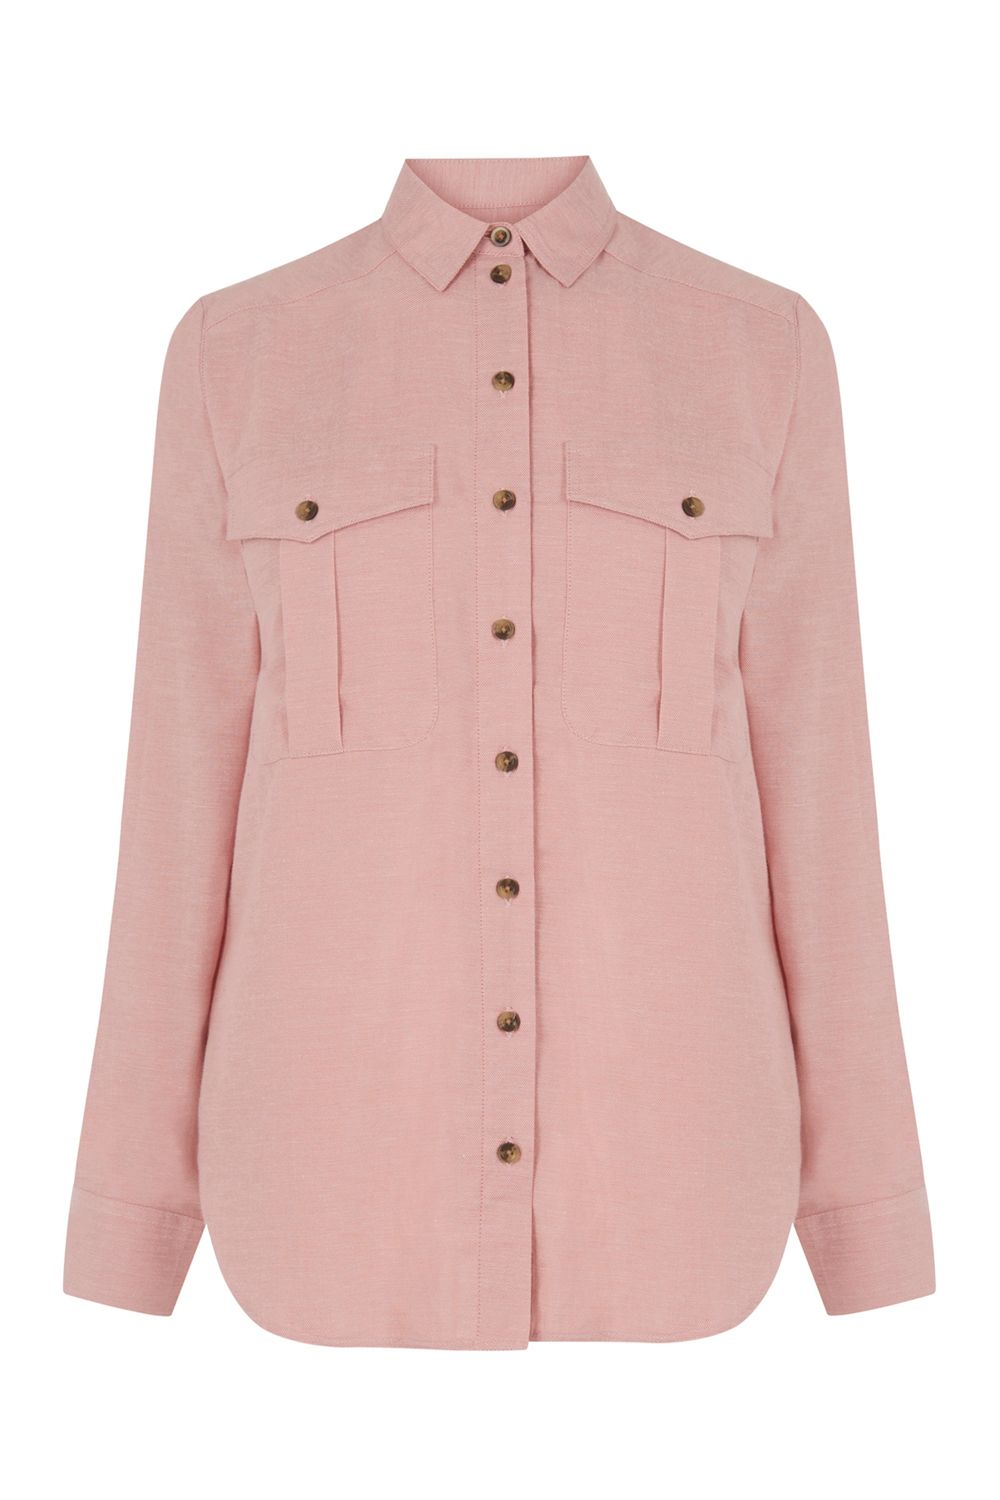 Warehouse Relaxed Pocket Detail Shirt In Pink Lyst